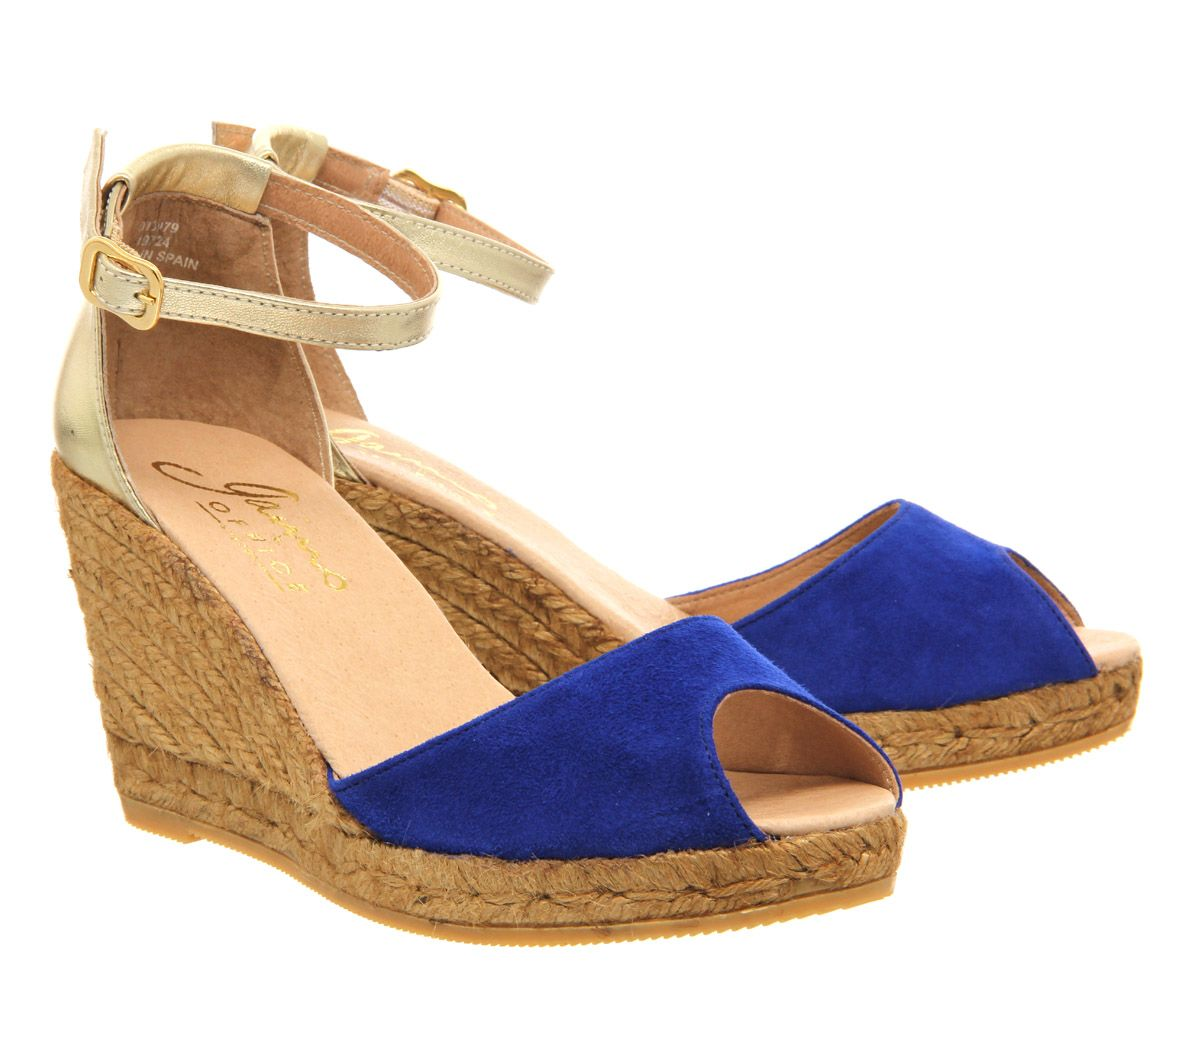 Gaimo For Office Susan Wedge Espadrille Cobalt Blue Gold Suede Leather Mid Heels